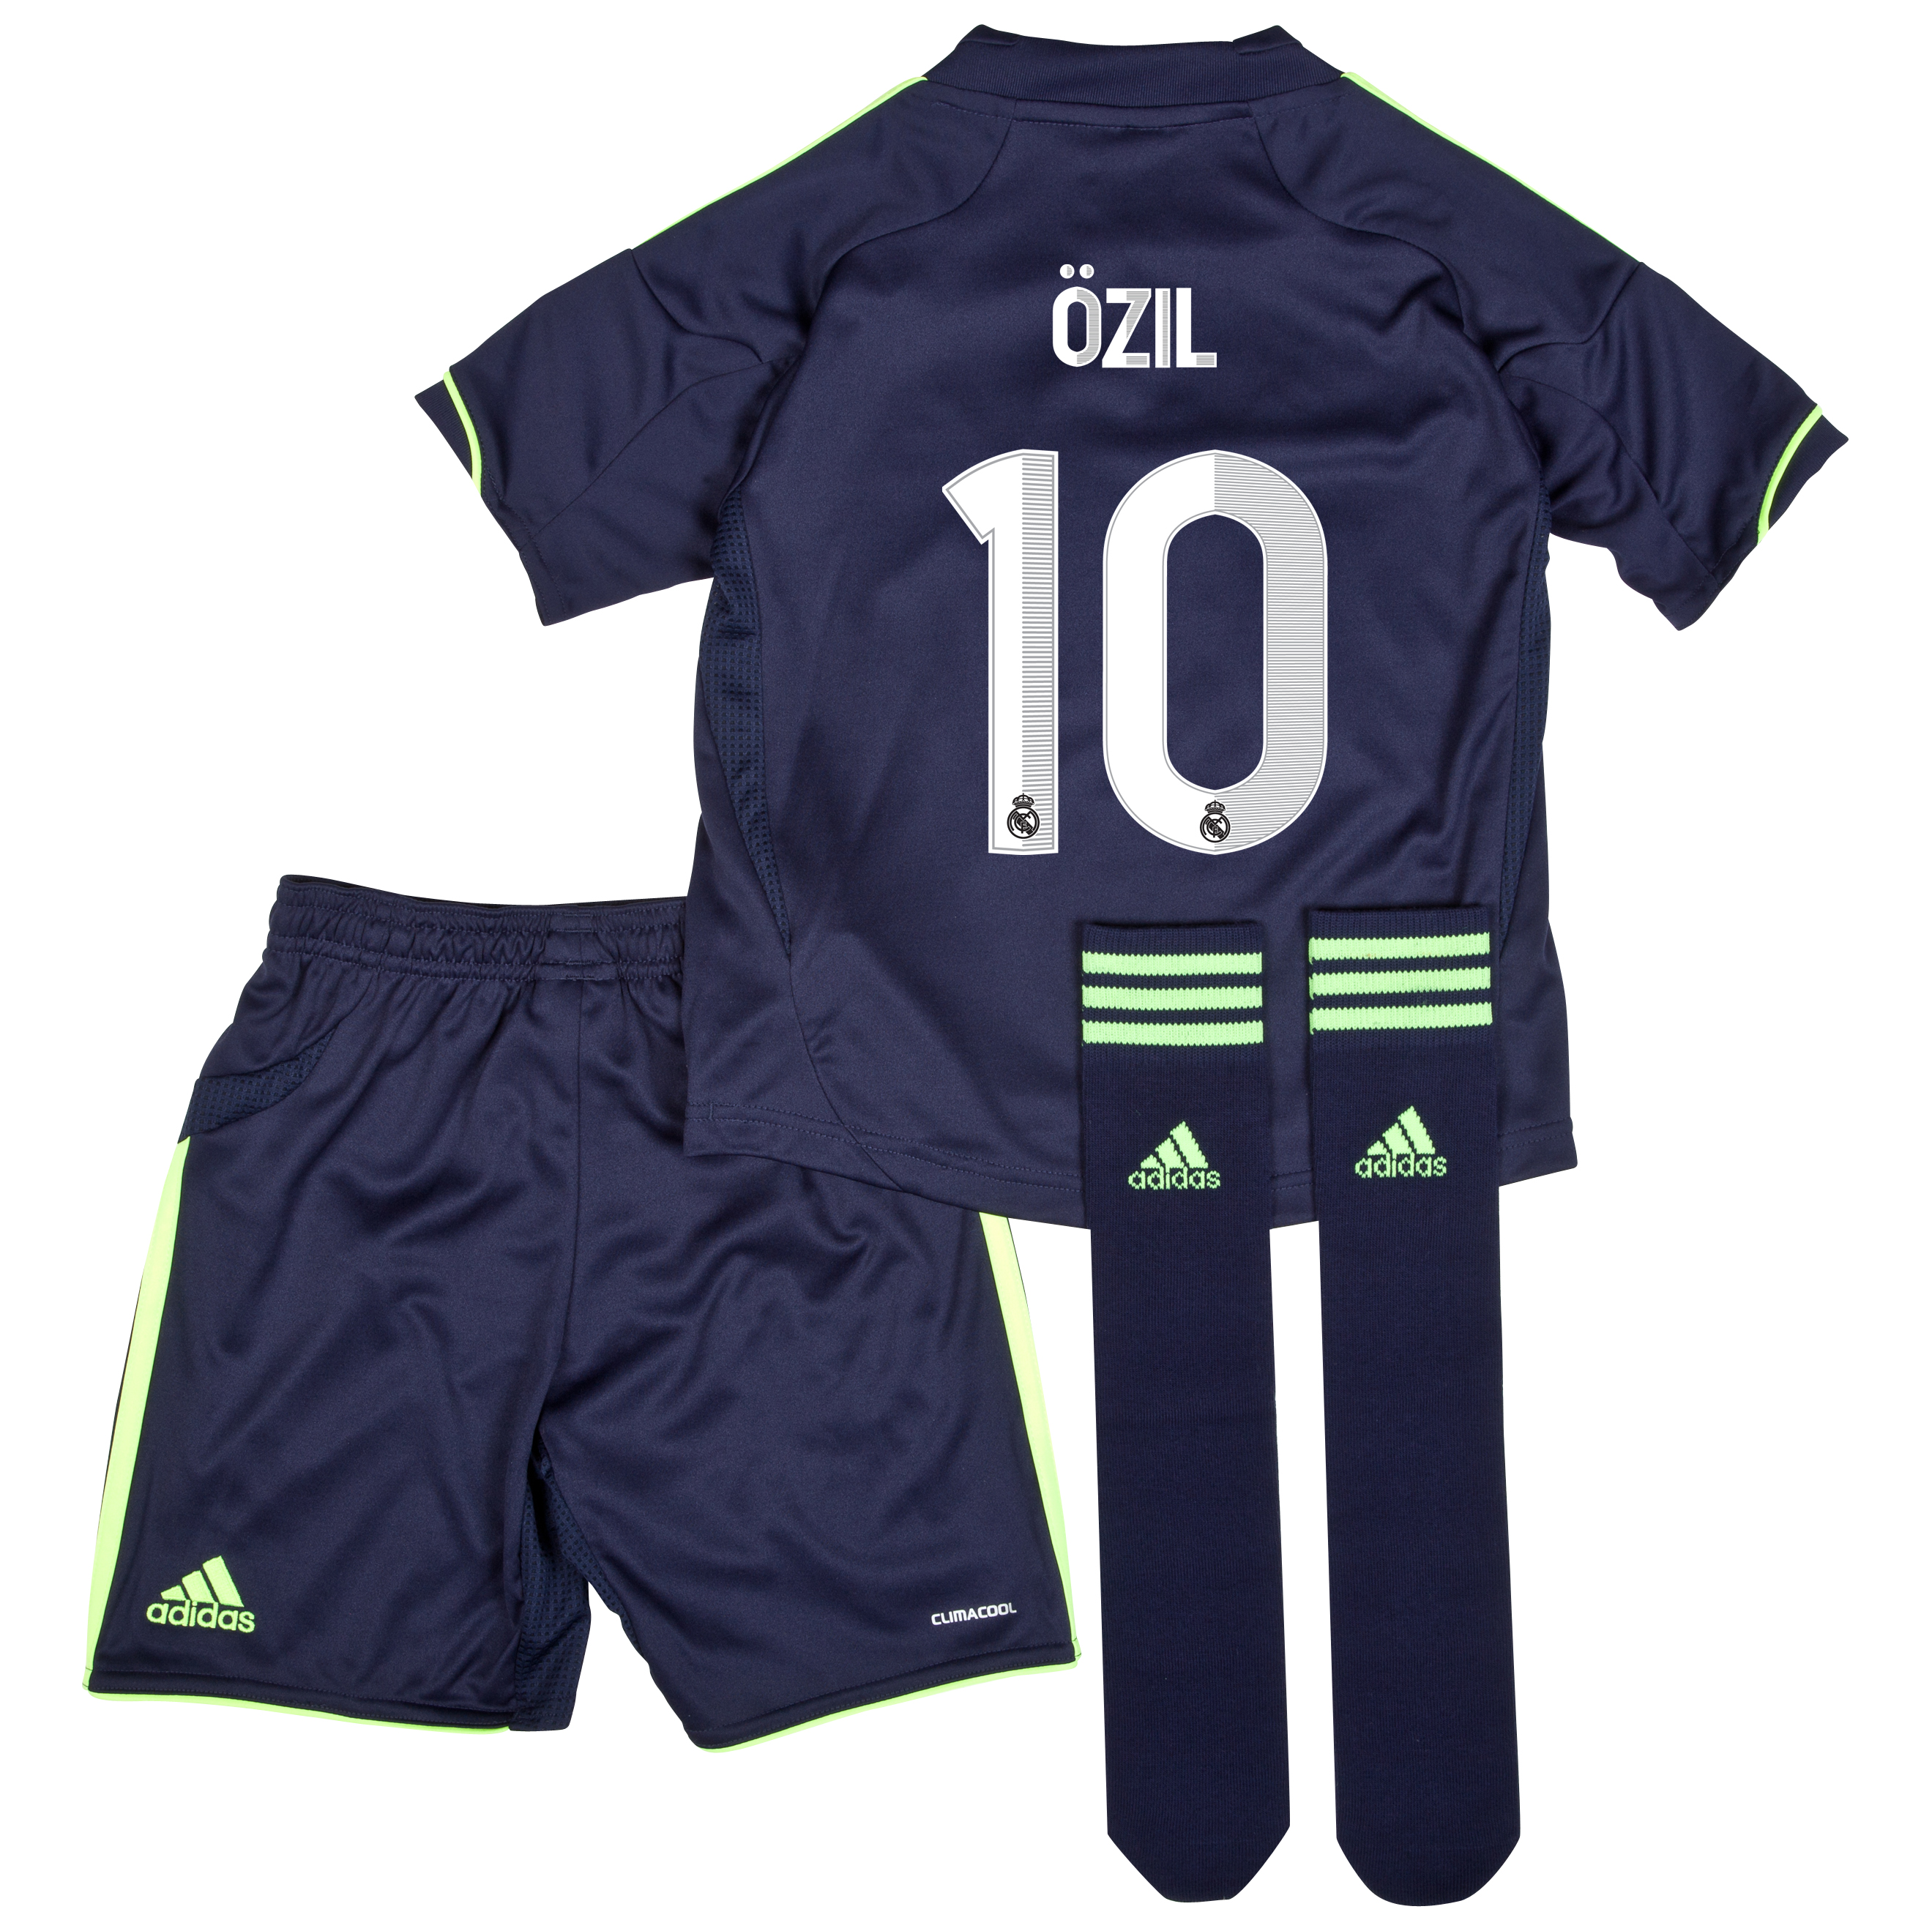 Real Madrid Away Mini Kit 2012/13 with zil 10 printing